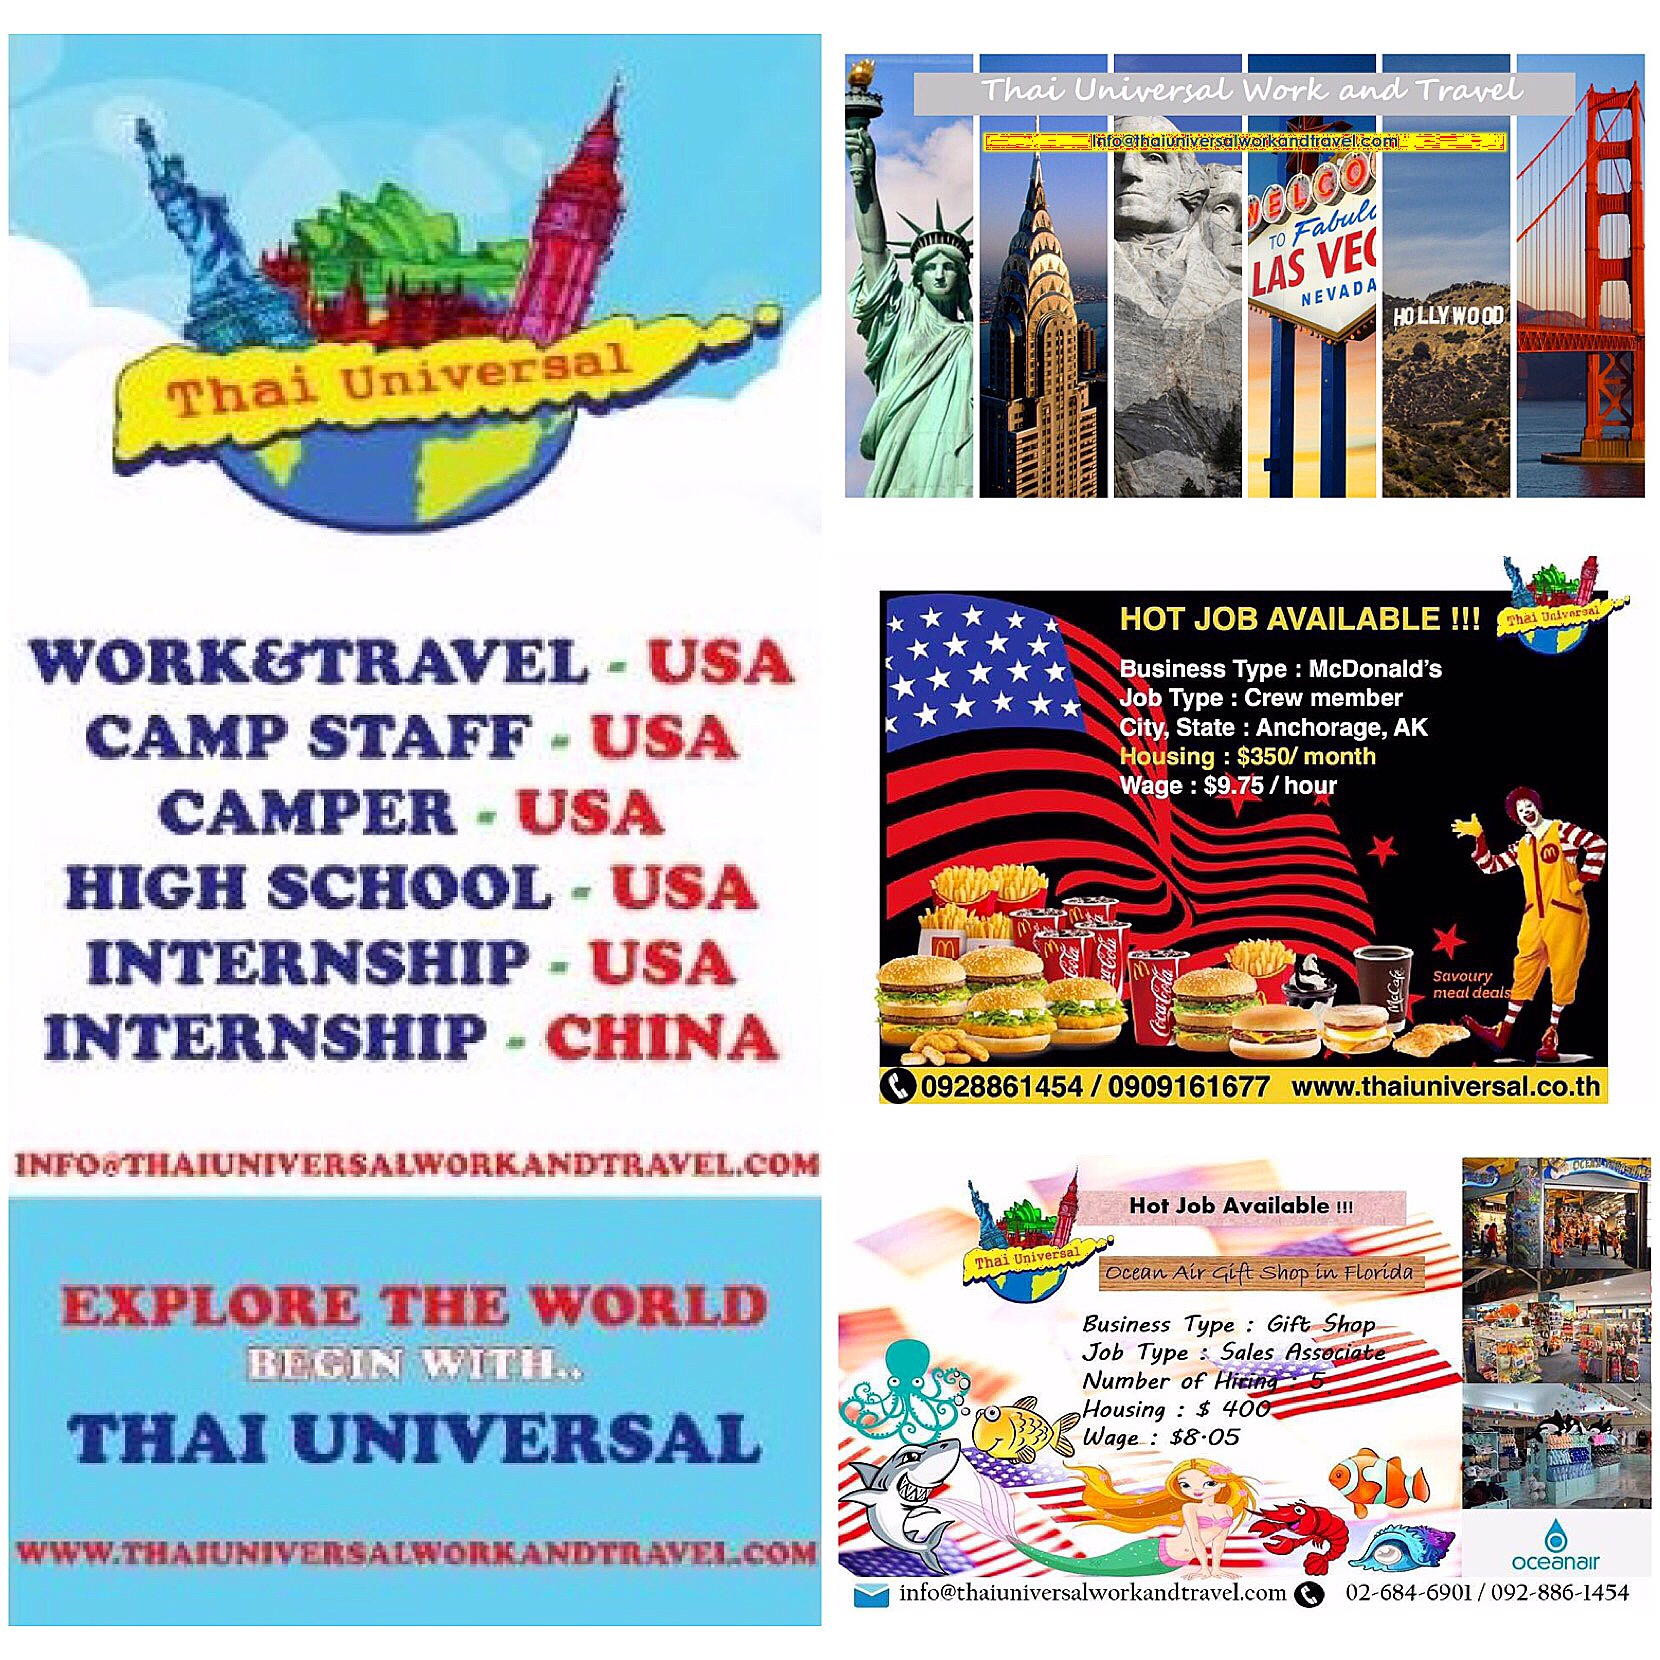 NOW OPEN!! Thai Universal Work&Travel on 2nd Floor